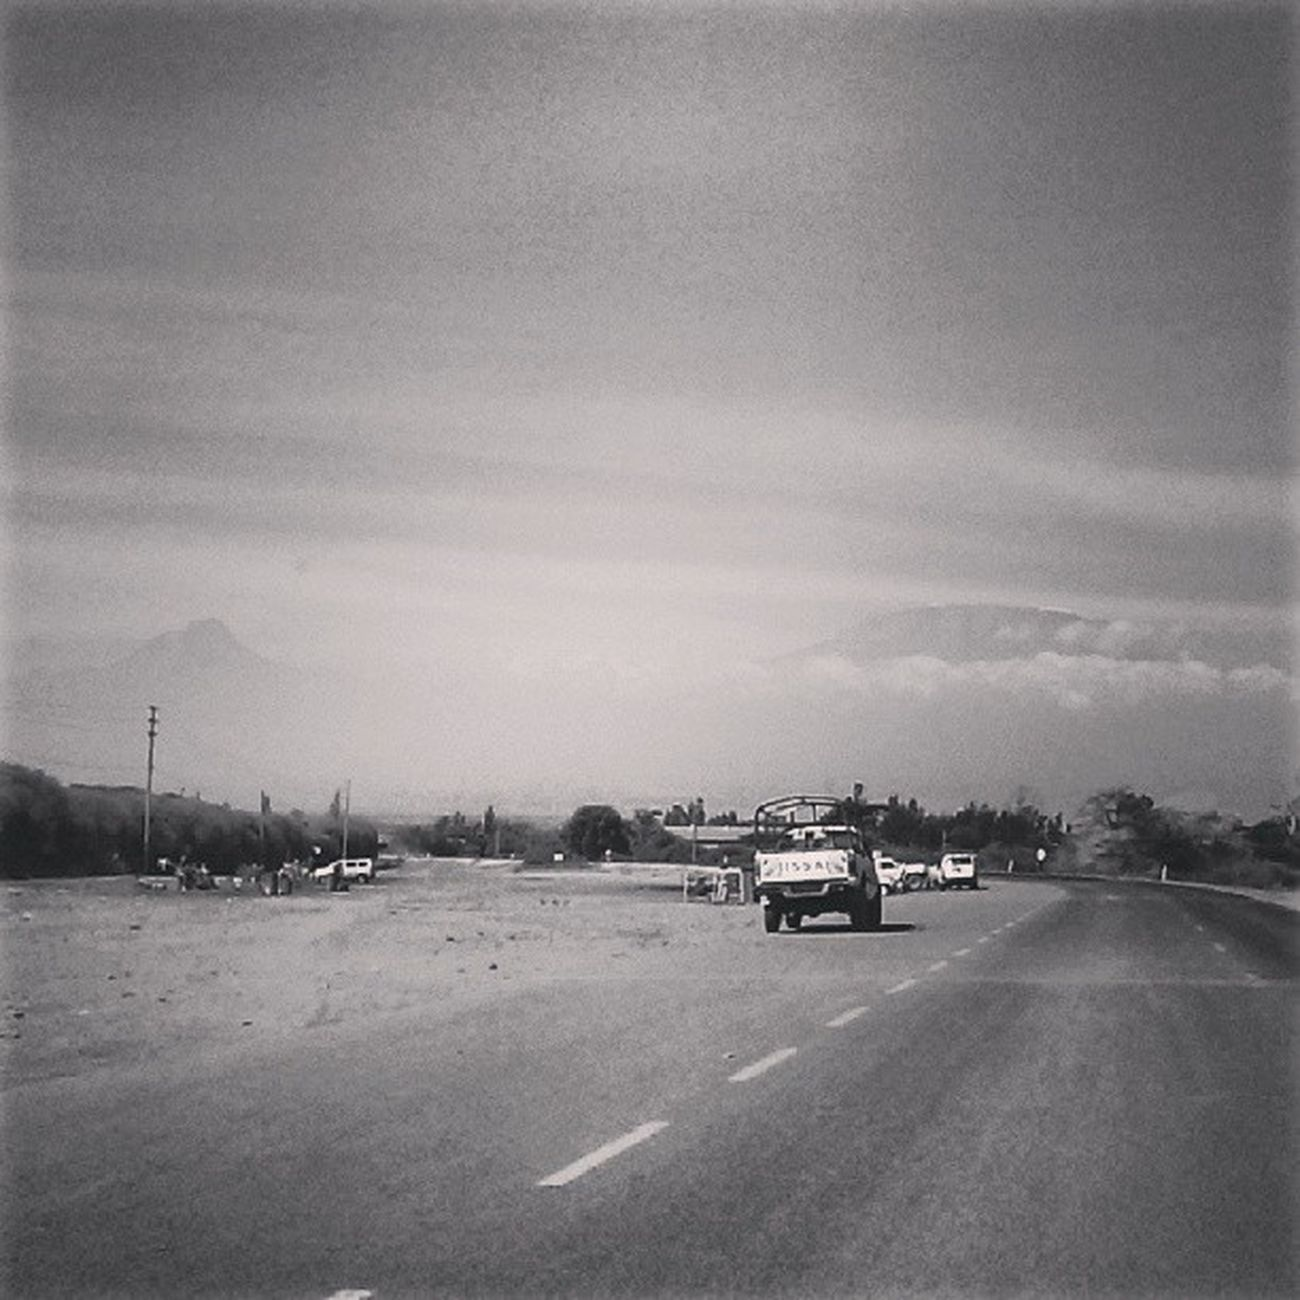 MtKilimanjaro Kenya FromNairobitoKilimanjaro Mountain roadtrip instacanvas webstagram statigram morning BW